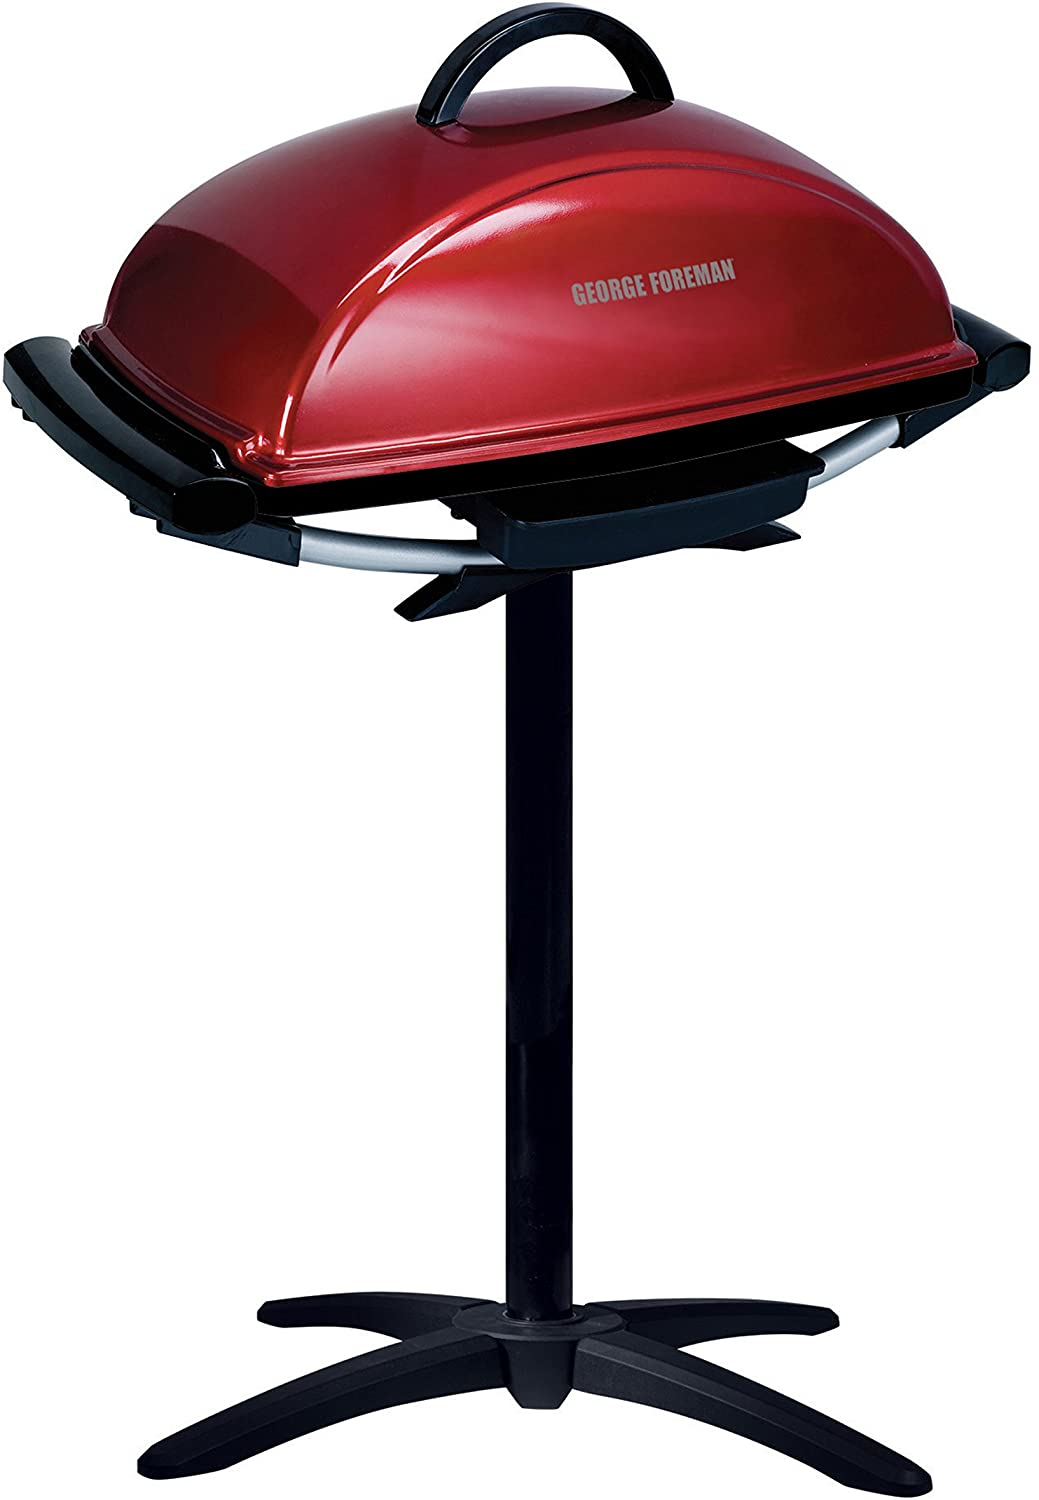 George Foreman GFO201R - Best for indoor and outdoor grilling